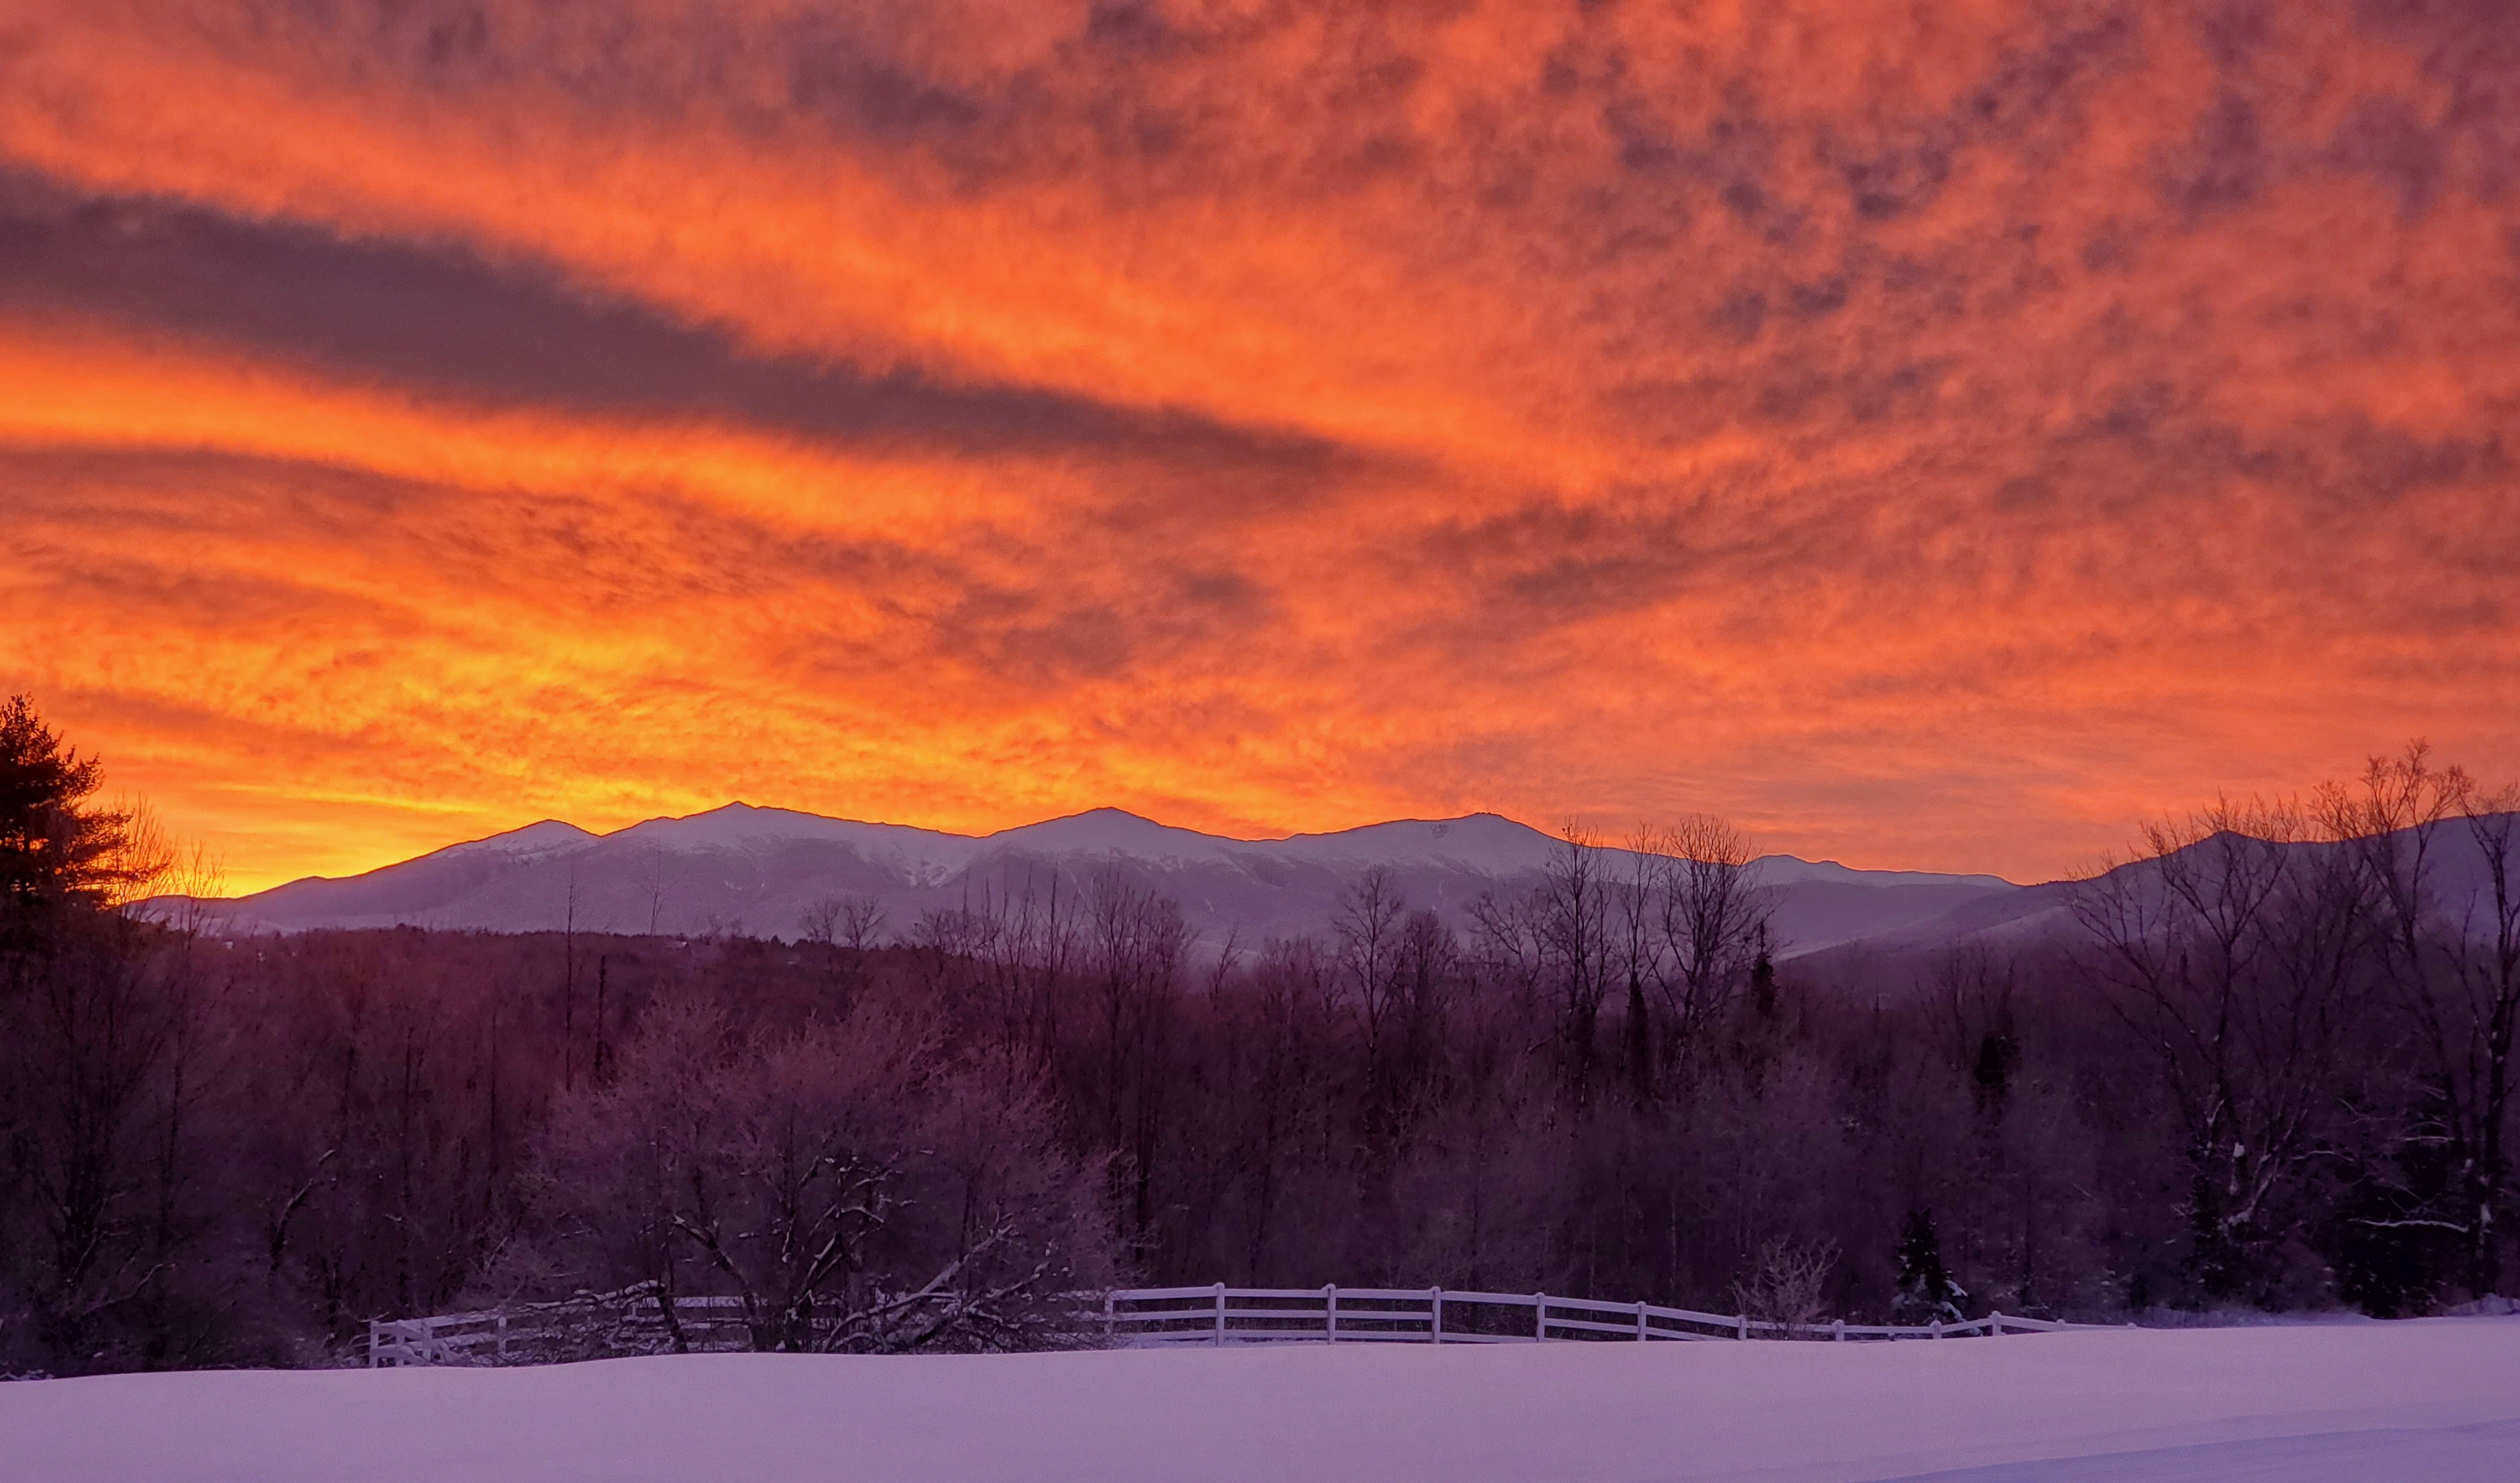 White Mountains Covered In Snow at sunset.